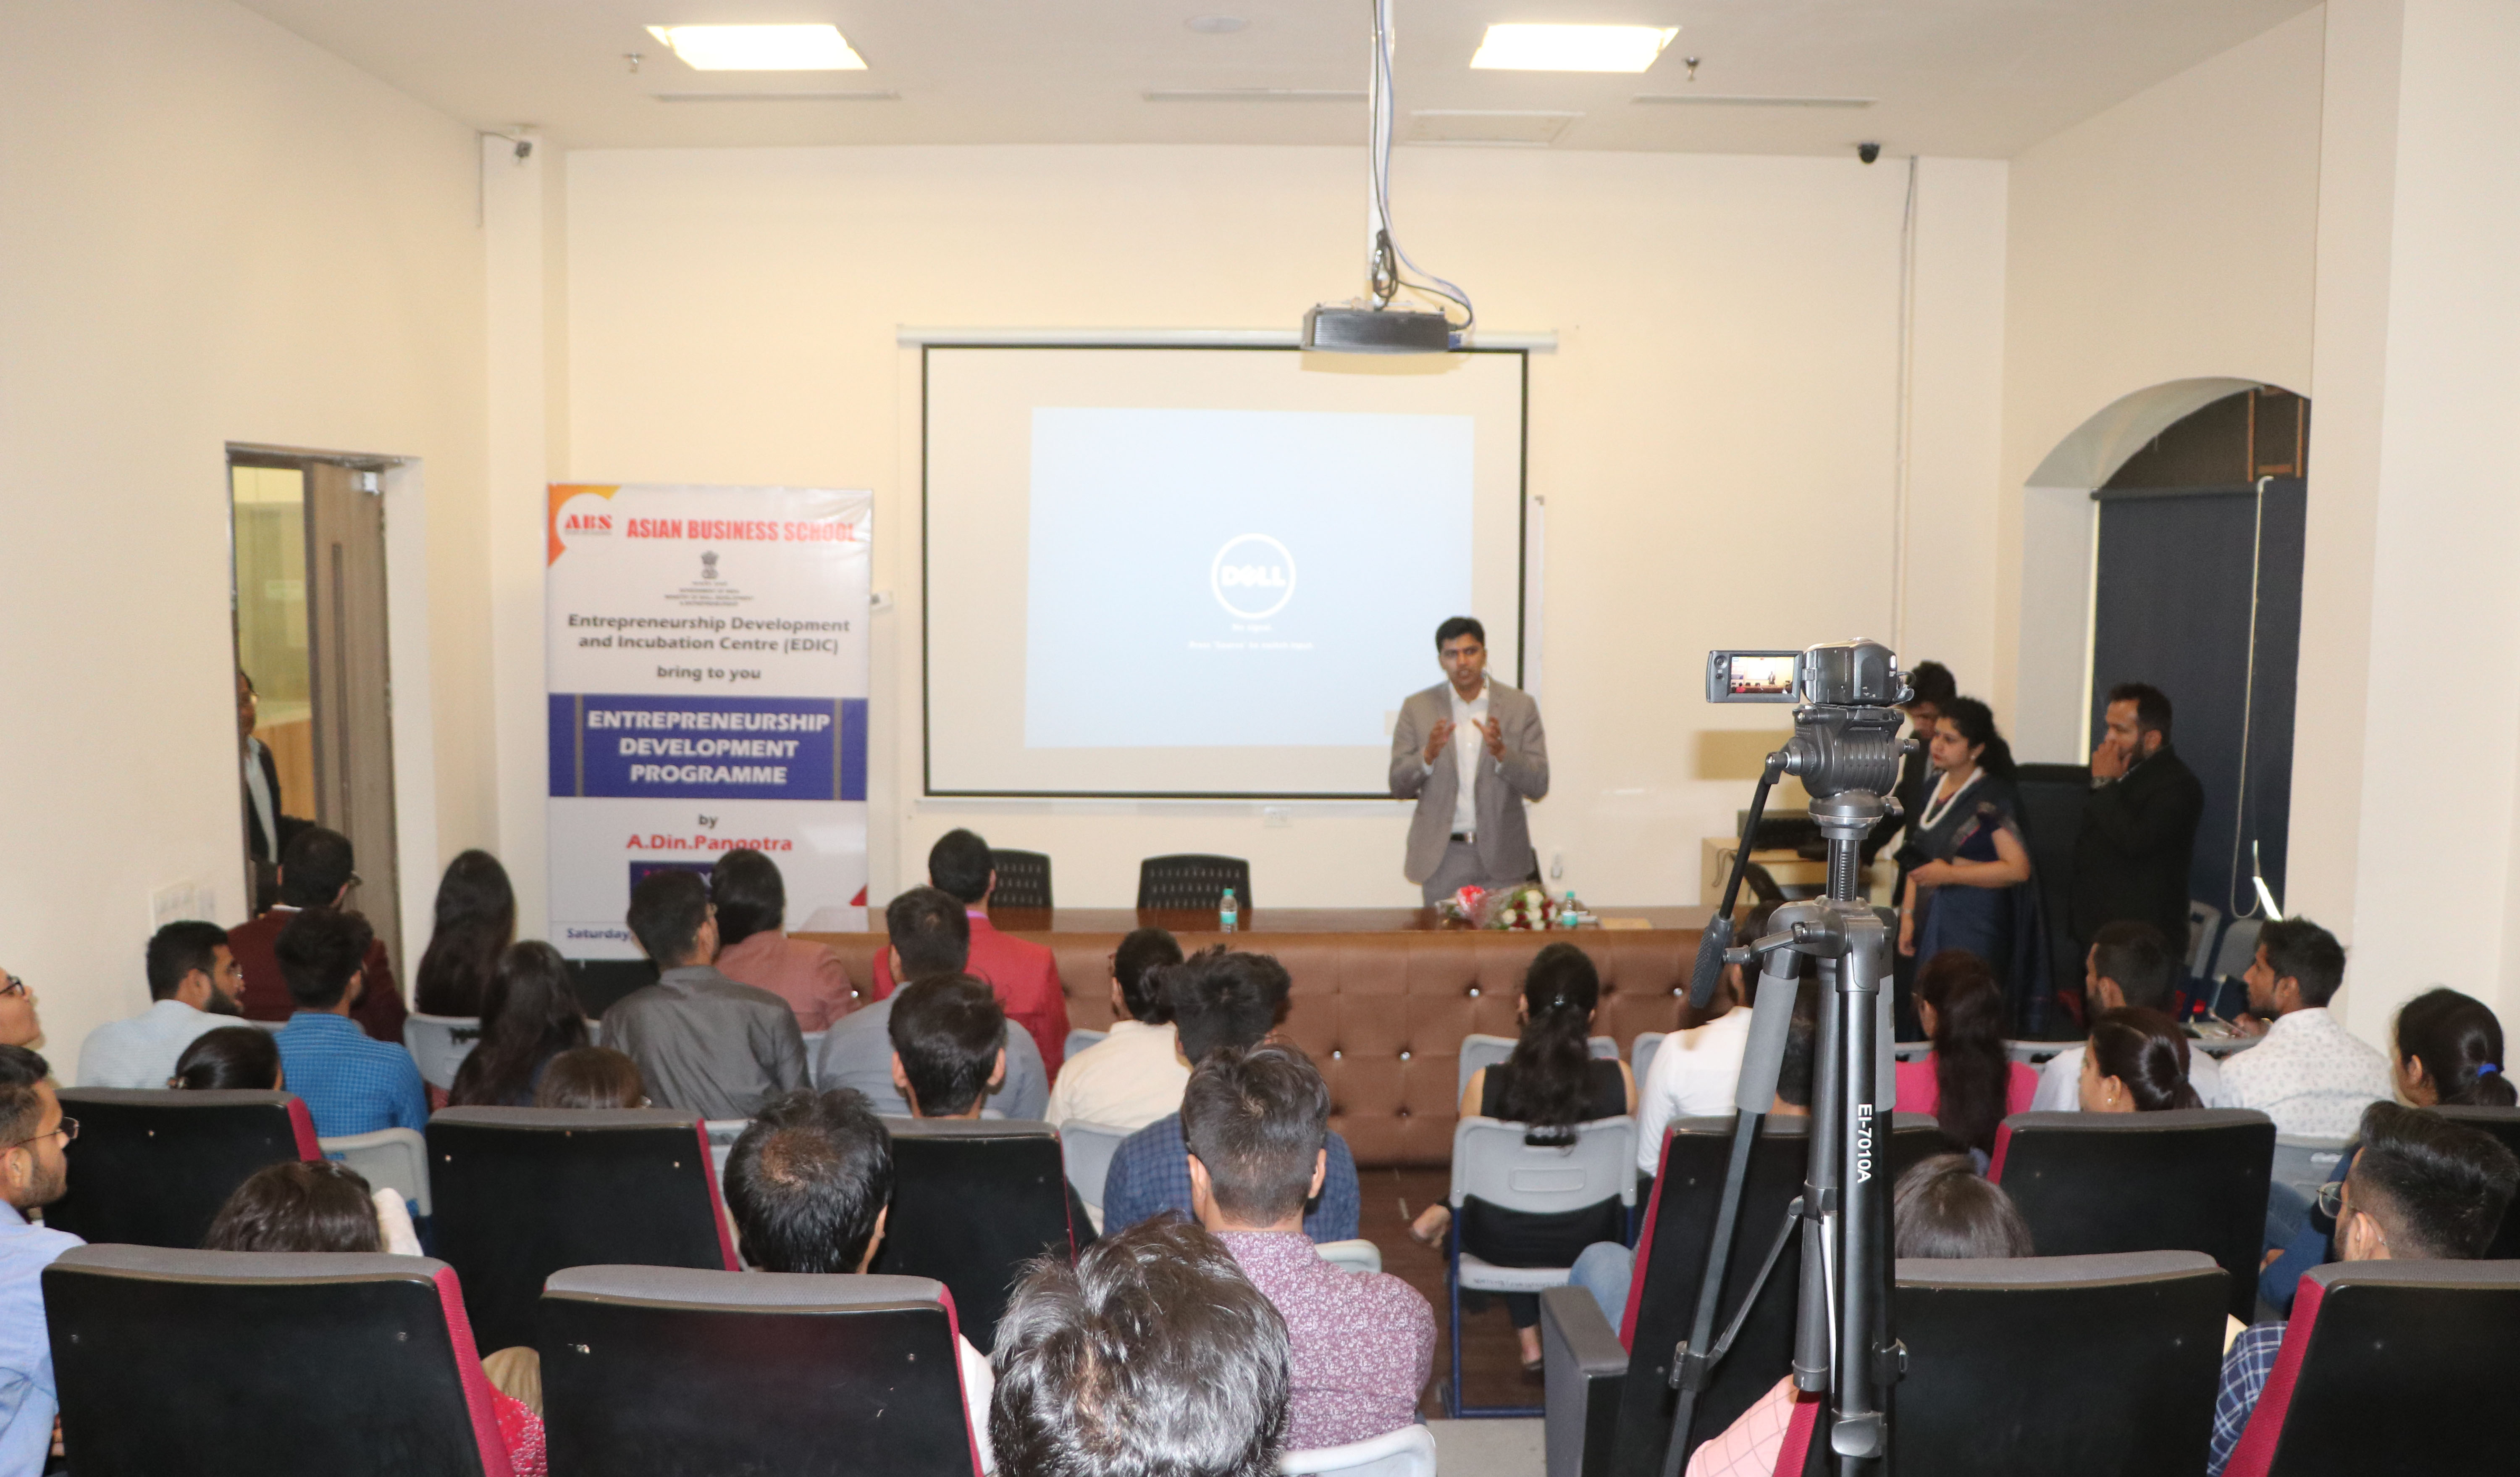 ABS EDIC Organizes a 15-Day Entrepreneurship Development Programme for PGDM Students